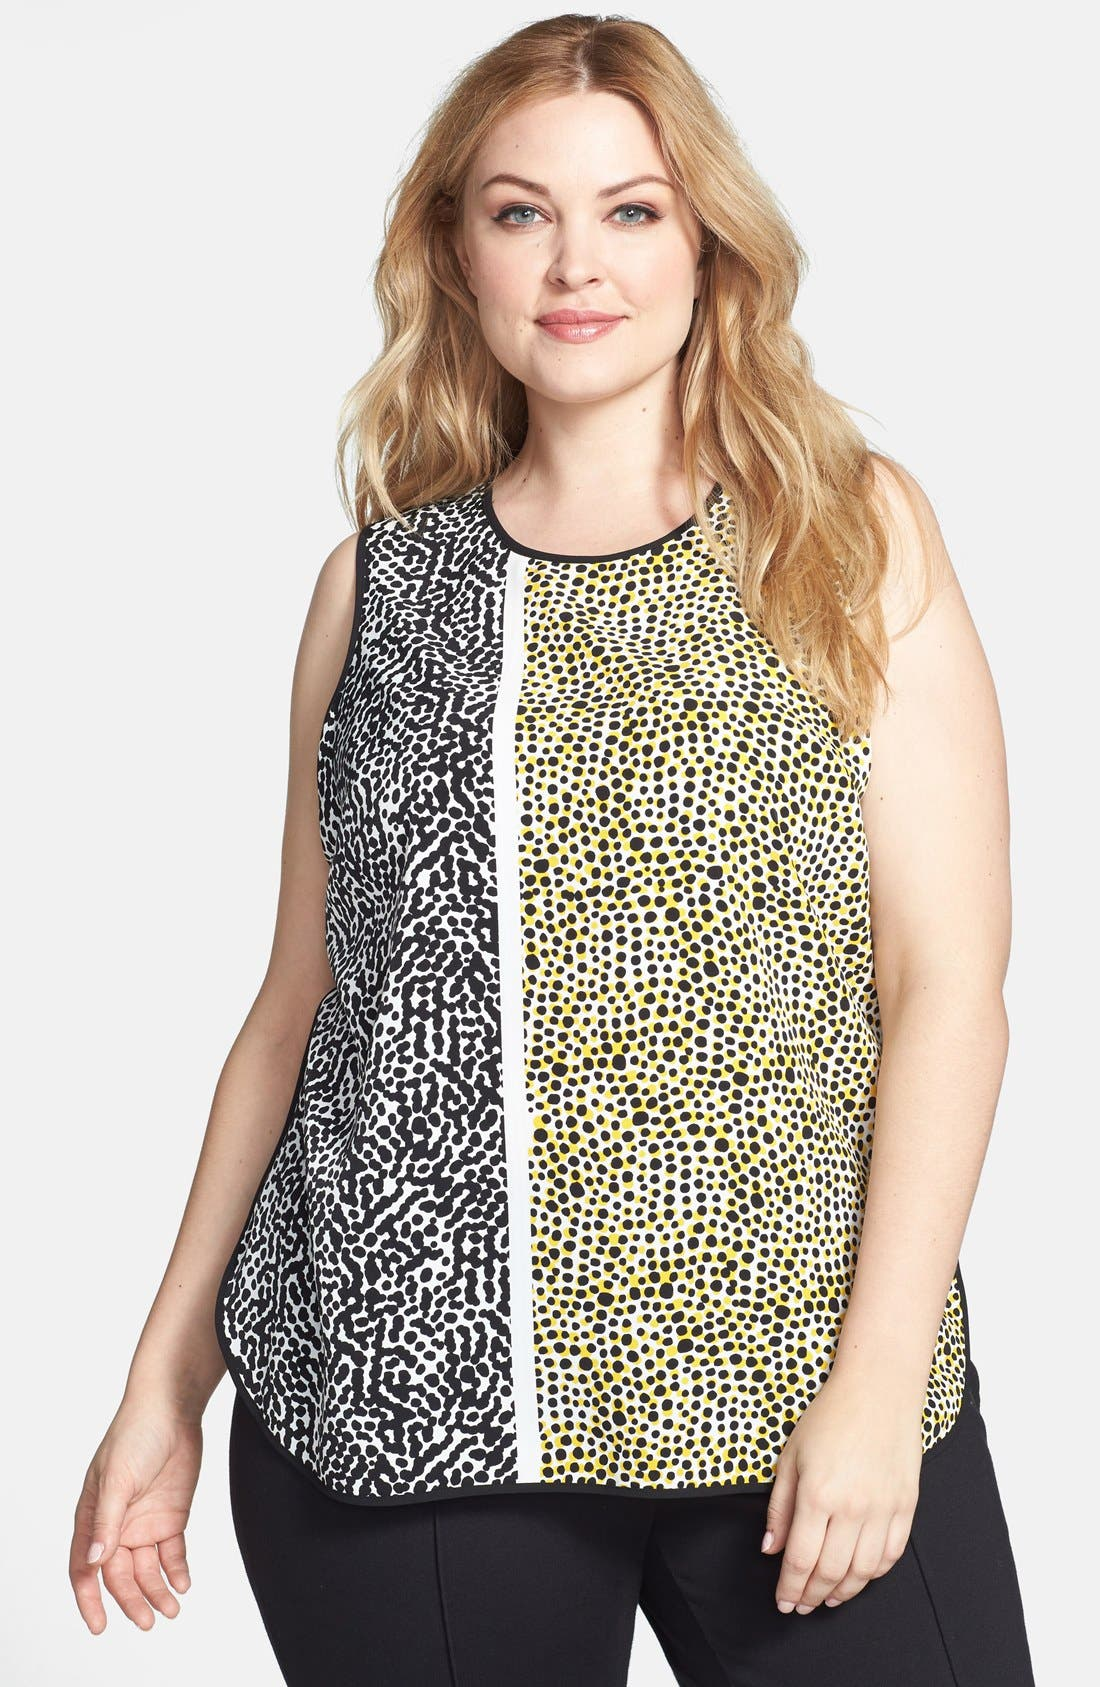 Main Image - Vince Camuto Print Sleeveless Blouse (Plus Size)